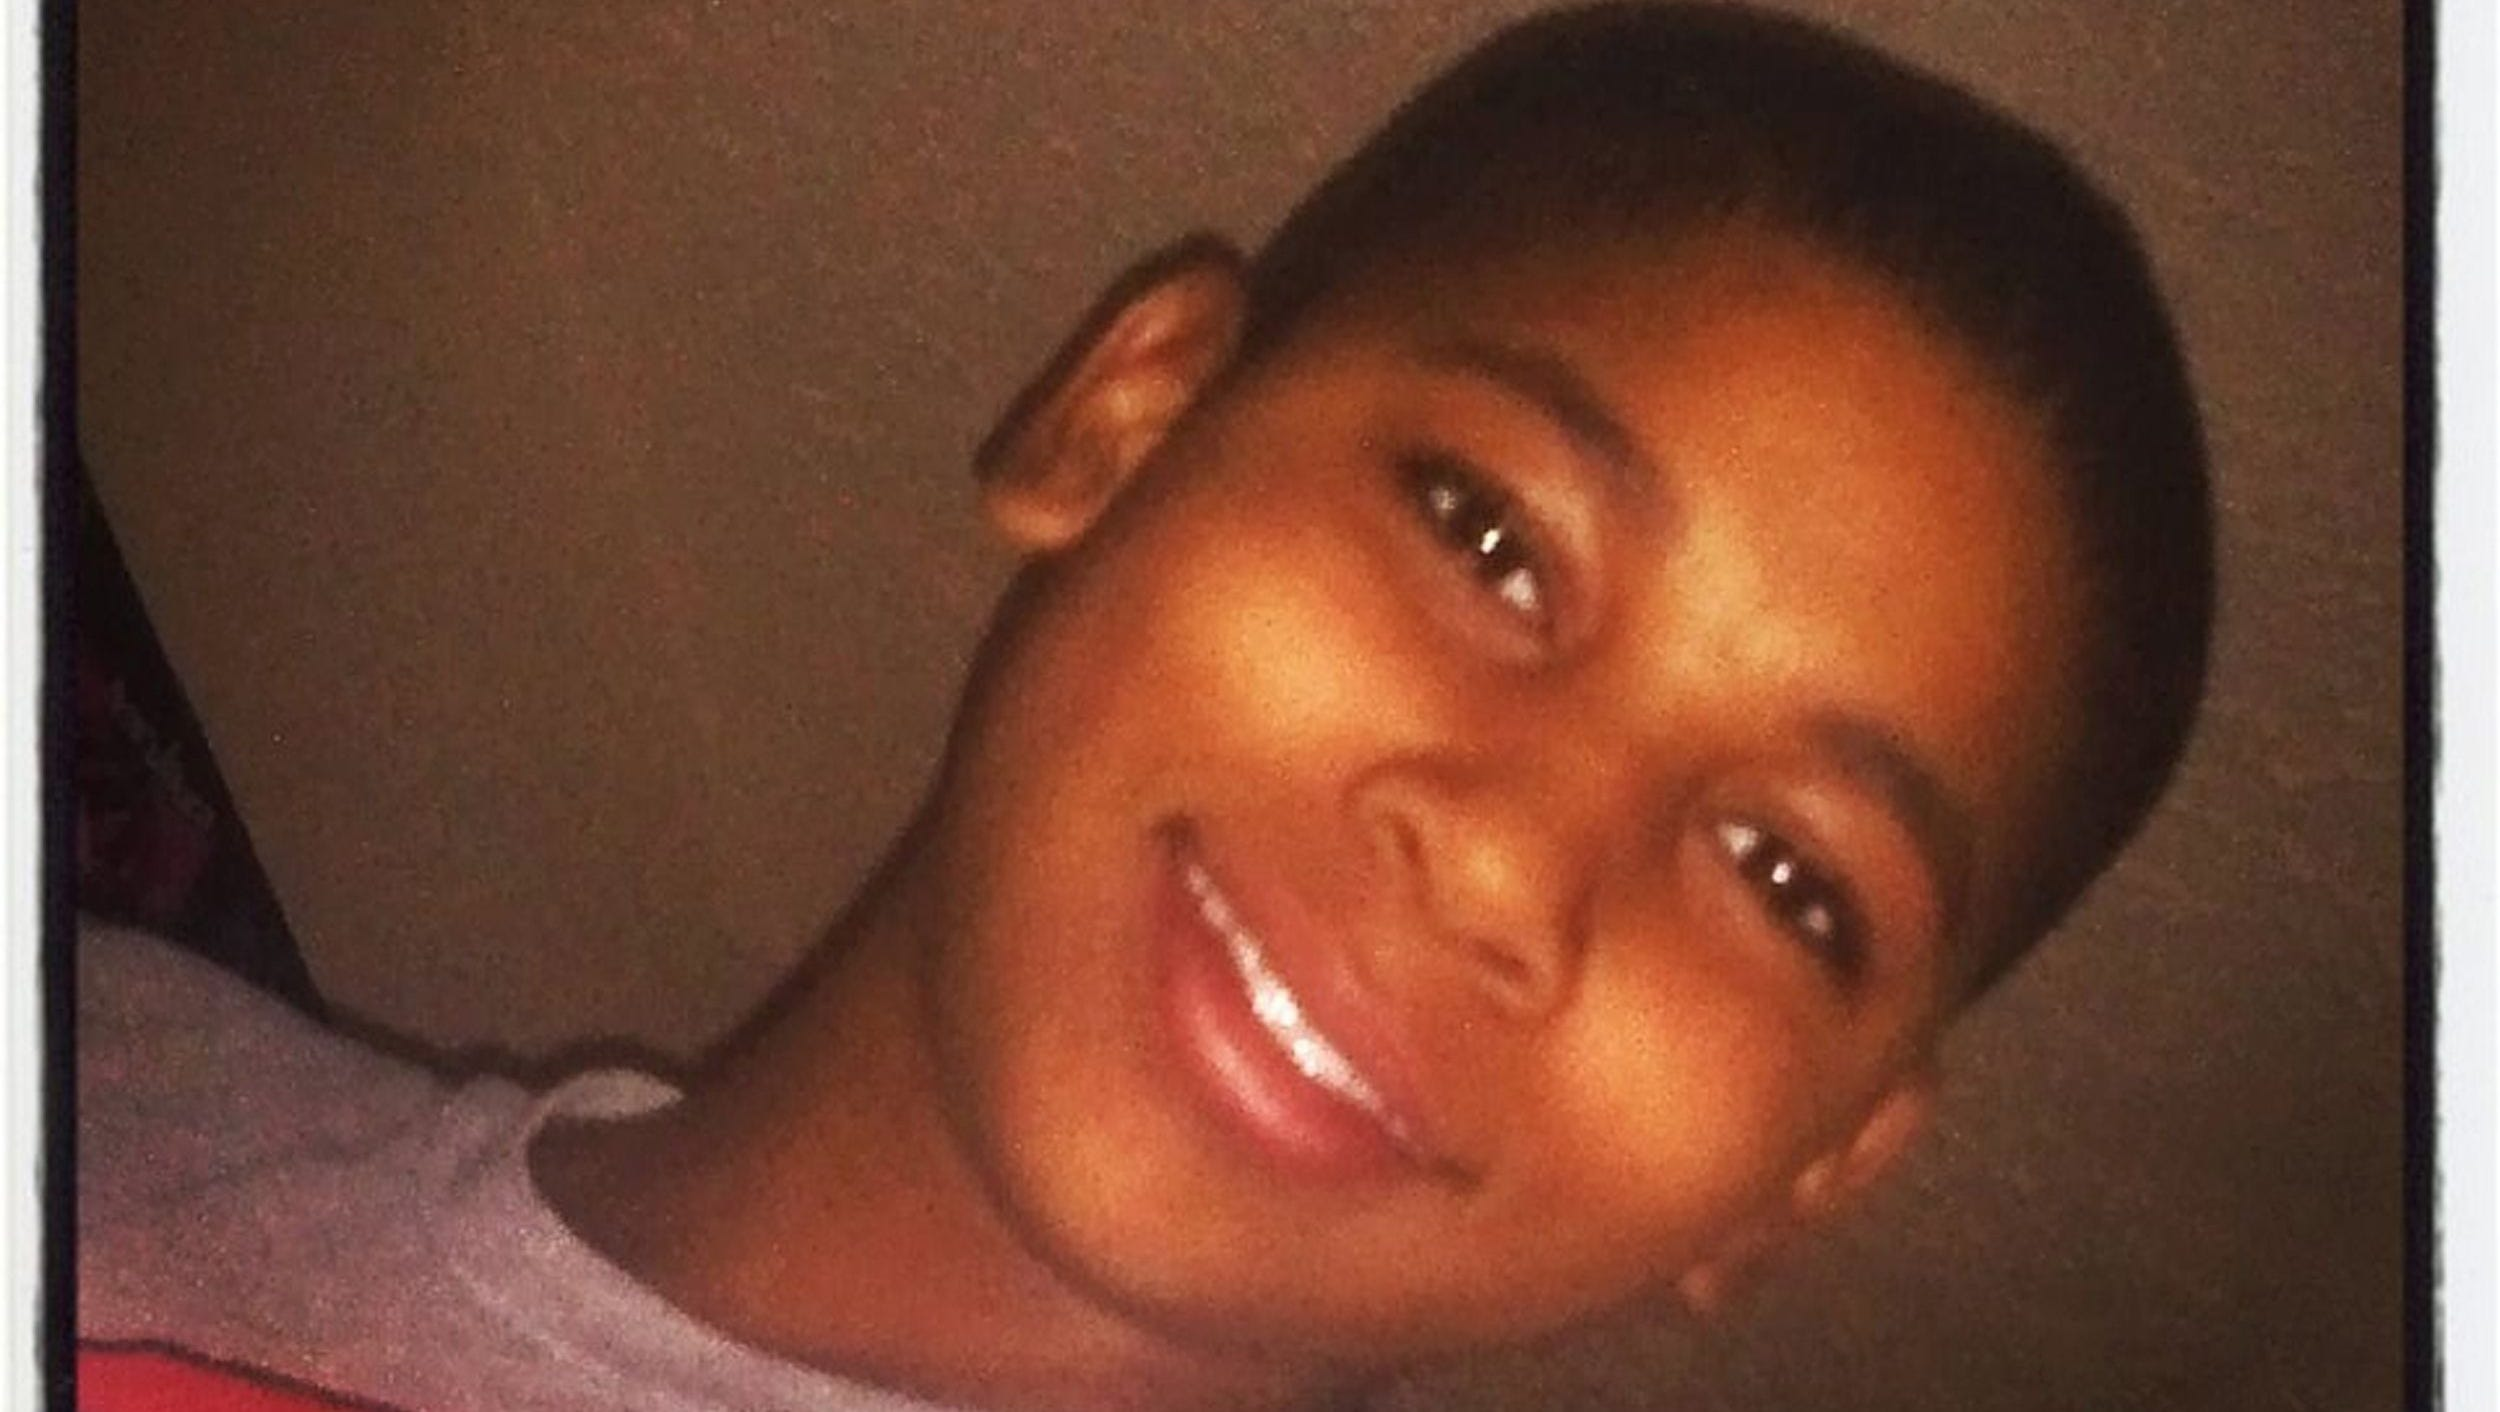 Cleveland officers in Tamir Rice shooting face disciplinary charges